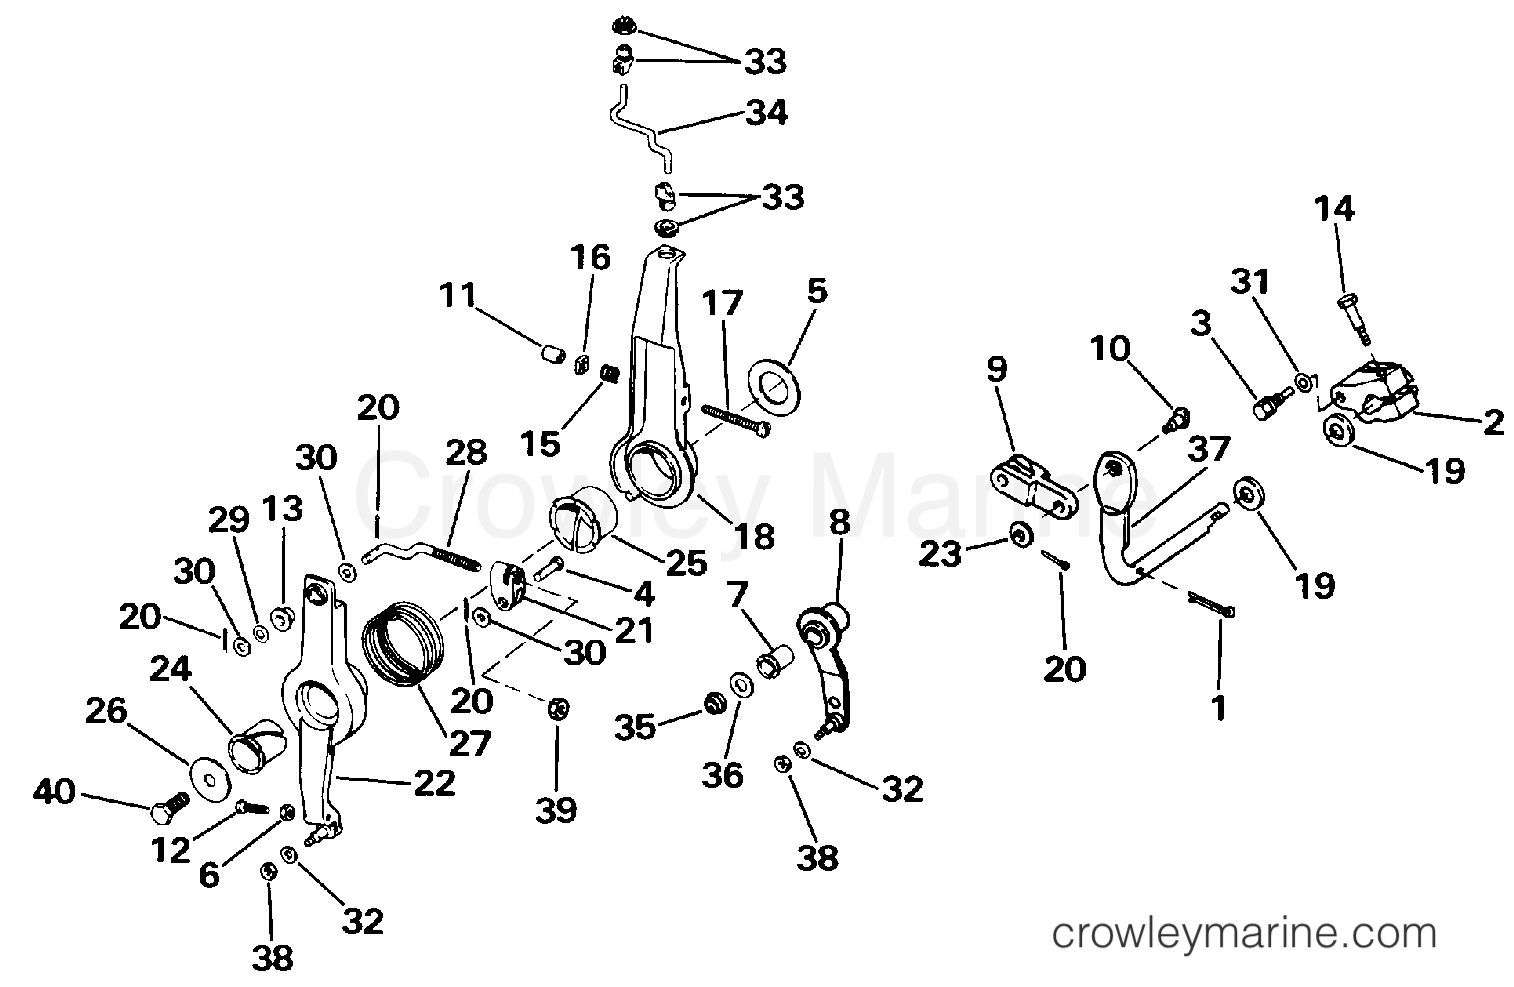 Omc Outboard Linkage Diagram Schematics Wiring Diagrams Inboard Throttle Shift 1986 Evinrude Outboards 150 Ignition Switch